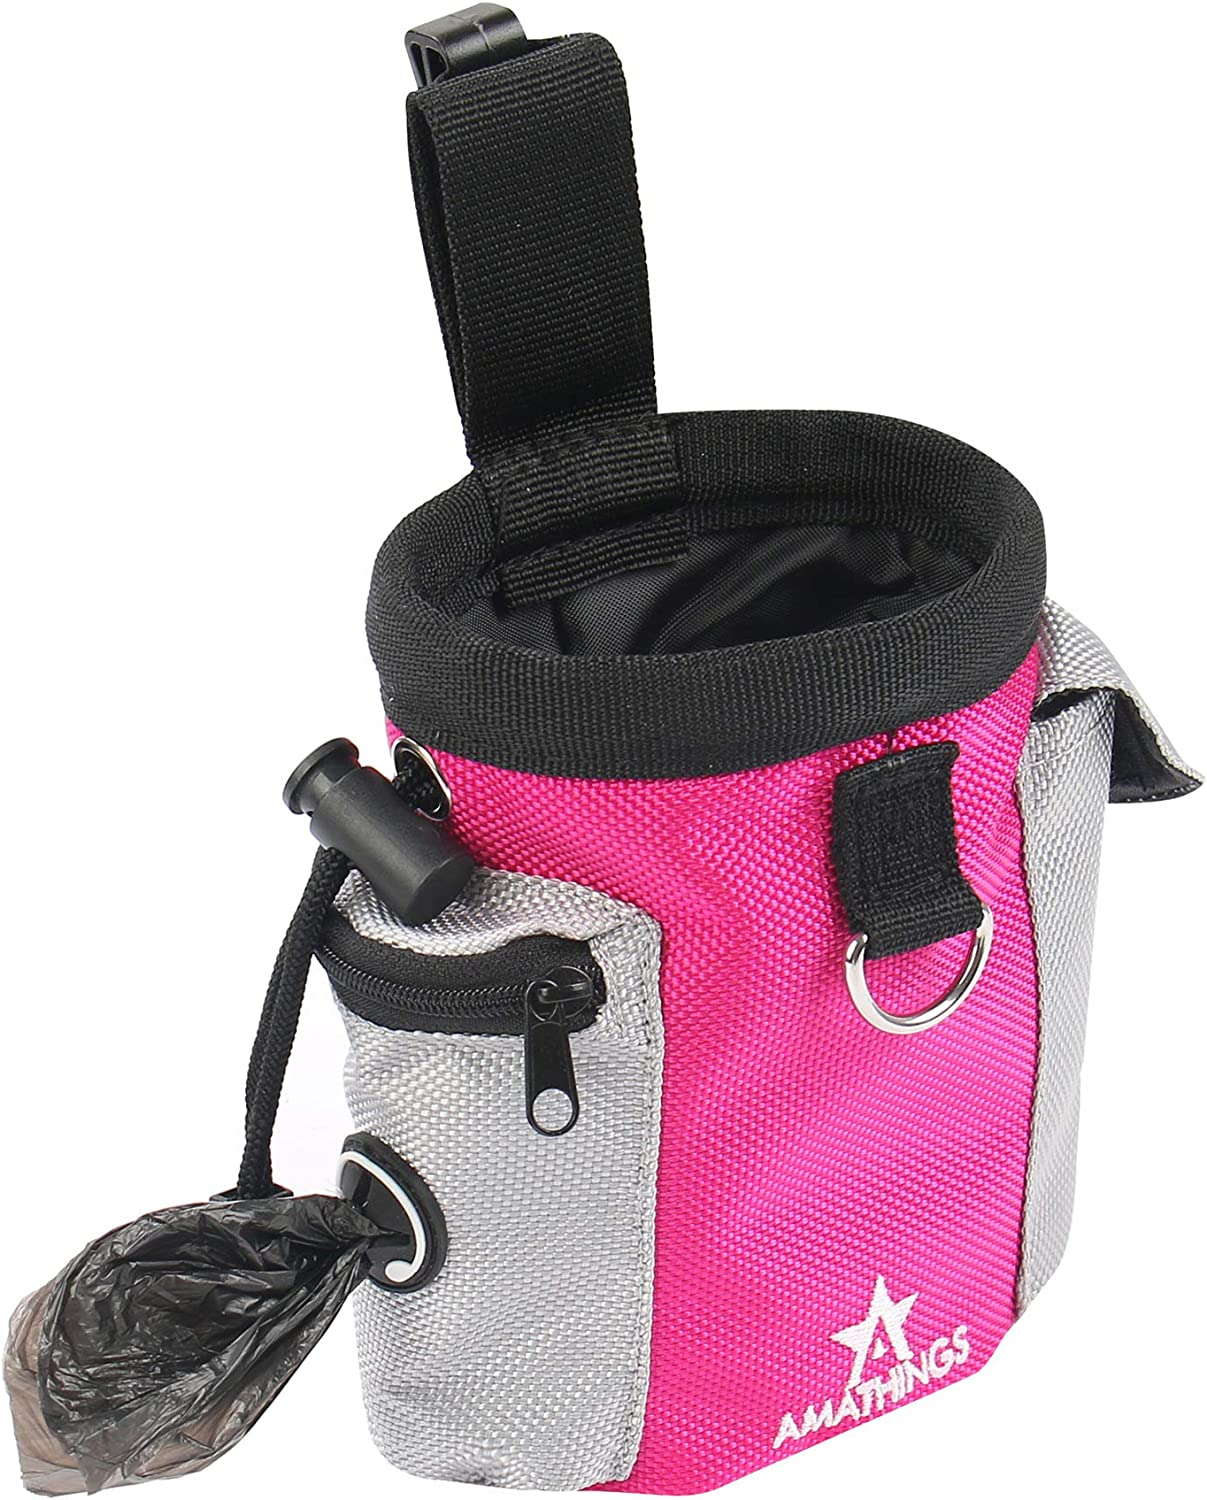 Treats for Travel or Outdoor Use Kibble with Detachable Waistband Easily Carries Pet Toys BESLIME Dog Treat Bag Pouch Dog Training Bag